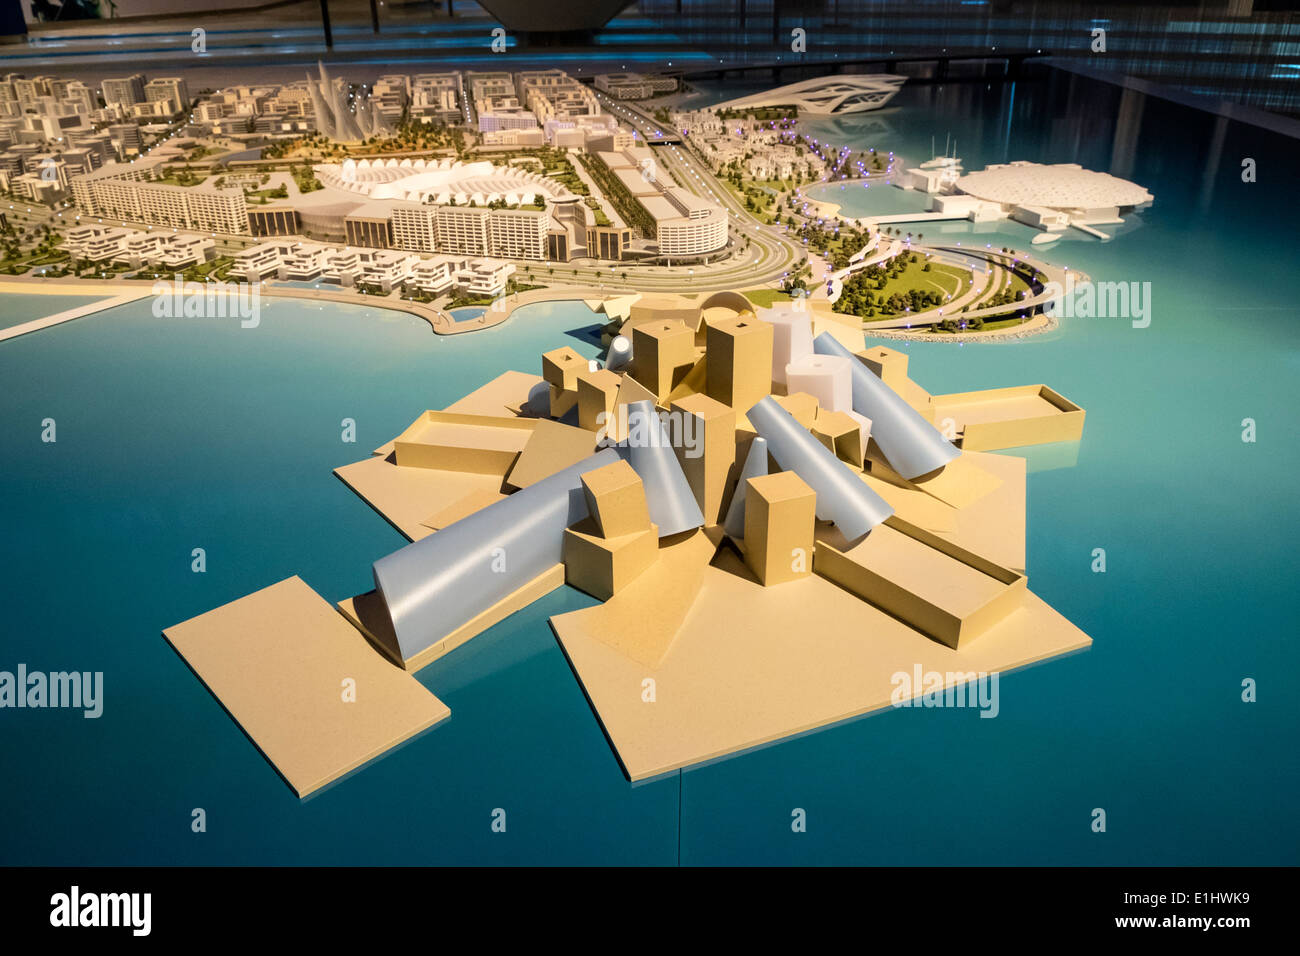 View of master plan with new museums (Guggenheim foreground) for Saadiyat Island in Abu Dhabi United Arab Emirates - Stock Image